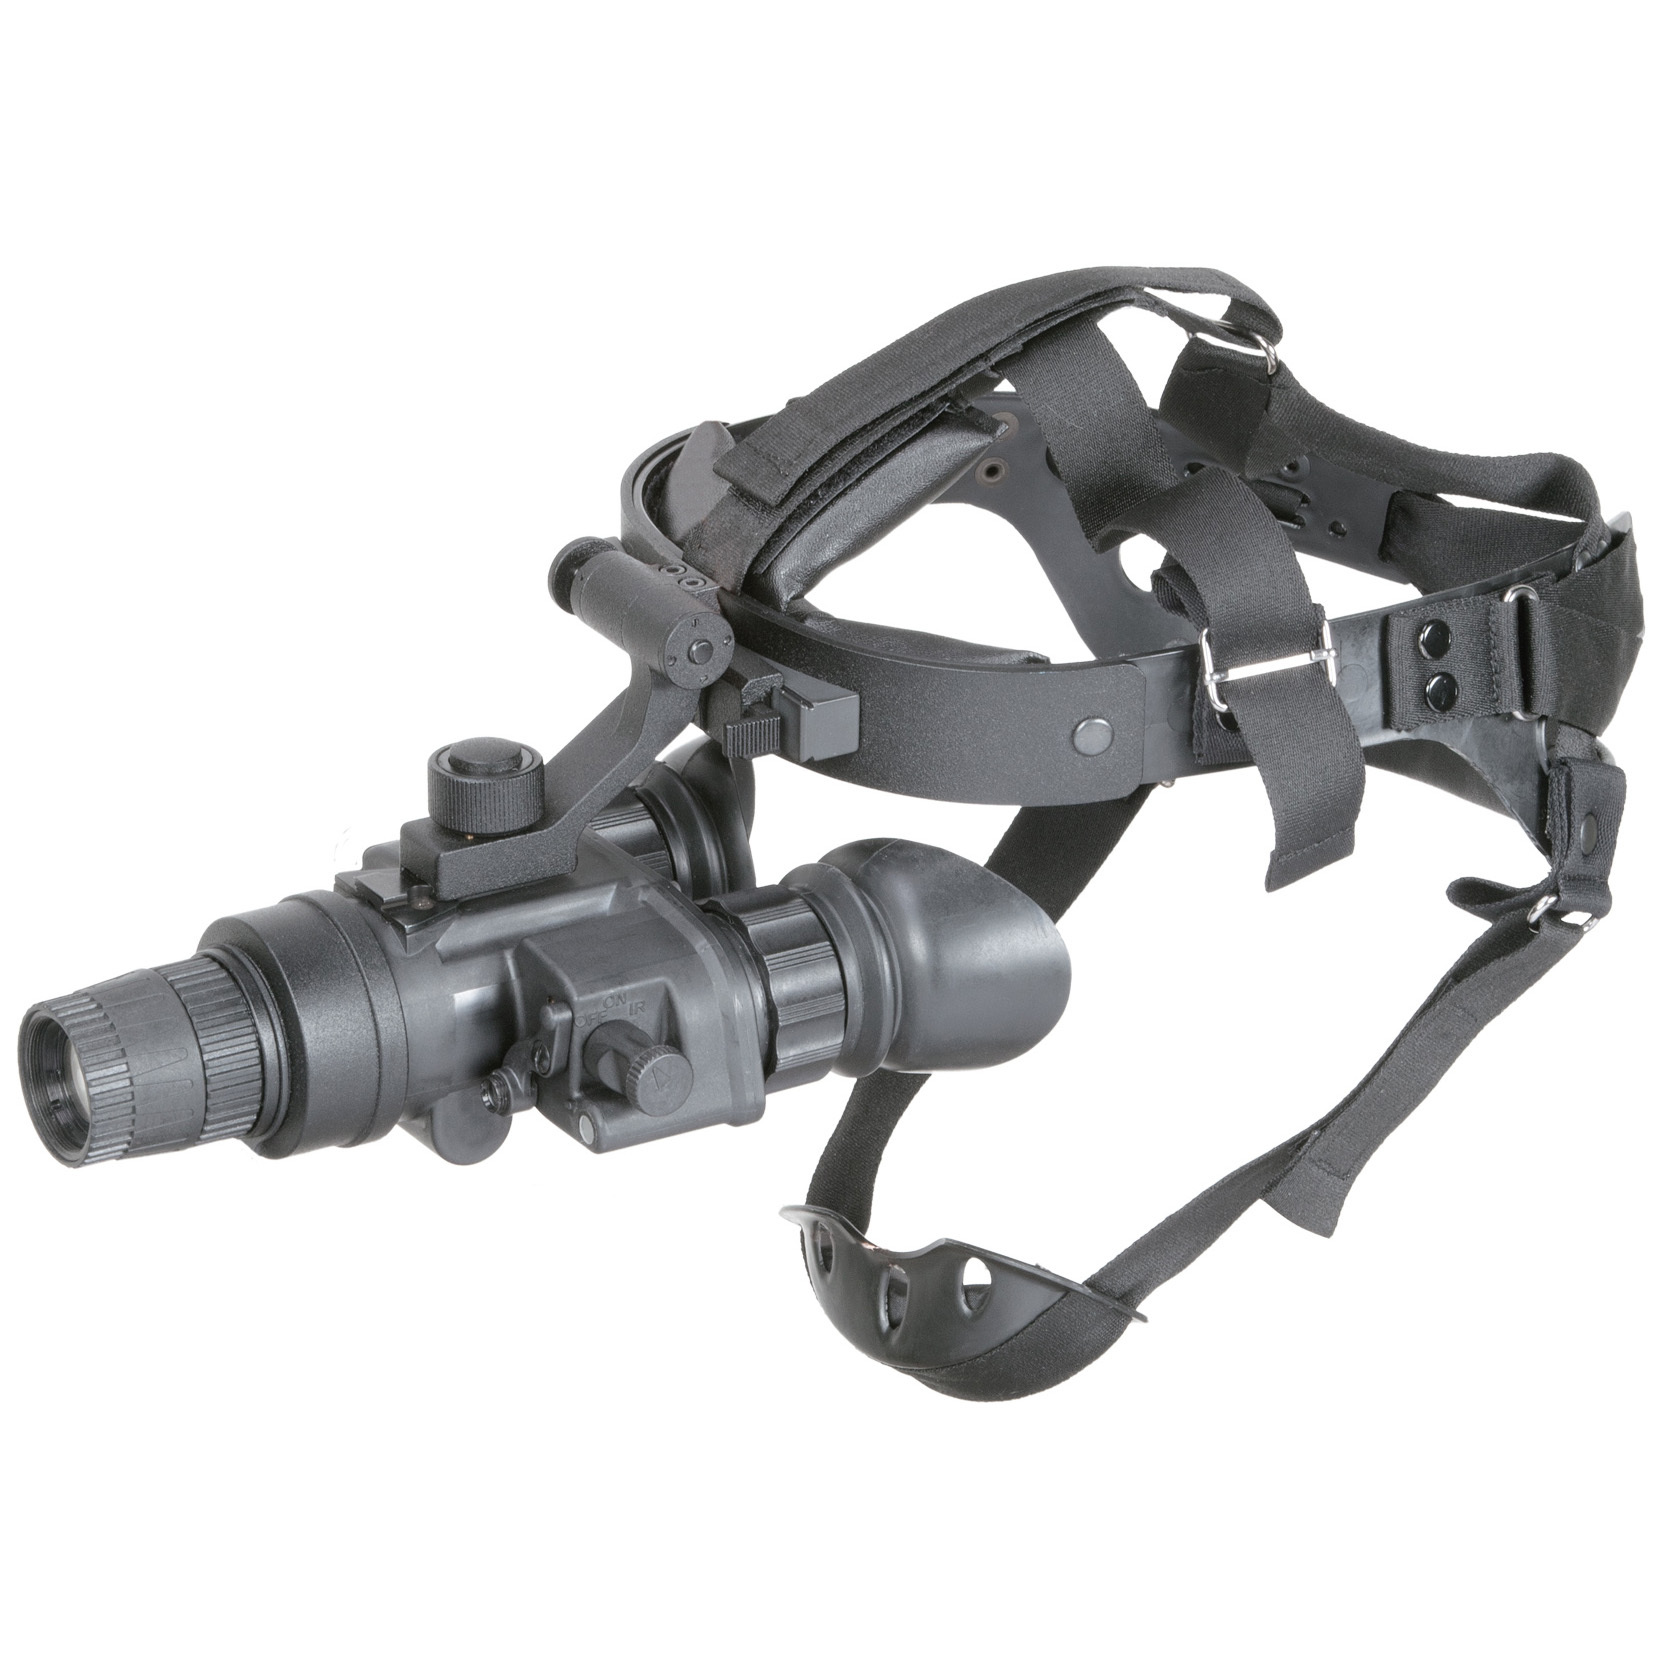 "Armasight Nyx7 Pro Gen 2+ ID MG Night Vision Goggles are professional quality night-vision and improved definition in a lightweight package... adjustable gain built in! Rugged dependable night vision performance and custom brightness adjustment that won't weigh you down, skip the outta-sight price! The Armasight Nyx7 Pro Gen 2+ ID MG Night Vision Goggles feature high-quality gen 2+ performance with an impressive 47-54 lp / mm resolution that rivals many gen. 3 tubes. And don't think the price means Armasight skipped on the quality. The Armasight Nyx7 is a night vision work-horse in a compact package that lets you pierce the night hands free. All the good stuff: Adjustable brightness control to customize your viewing, bright light shut-off circuitry, built-in IR illuminator with flood lens, larger 27mm objective and multi-coated optics... even an adjustable head mount kit with flip-up. Bring these features into focus: Gen 2+ image intensifier tube is rated to a sharp 47-54 lp / mm resolution Manual brightness control lets you fine-tune your image for best viewing... built in bright light cut-off 1X magnification Built-in infrared illuminator with flood lens provides invisible light when natural light is scarce Lens system: F1.2, 27mm... multi-coated glass lenses ensure crystal-clear views Focus: .25m to infinity 15mm eye relief 40 degrees F.O.V. Rugged, lightweight, waterproof and built for a wide range of applications Easy to use with simple control buttons and eyepiece-only focusing Includes adjustable head mount with flip-up for hands-free use Uses one 3V CR123 lithium battery (included) or AA batteries for up to 60 hrs of use Approx. 6 1/2"" x 4 1/2"" x 3"", 1 lbs. Own the night! - $2,454.99"